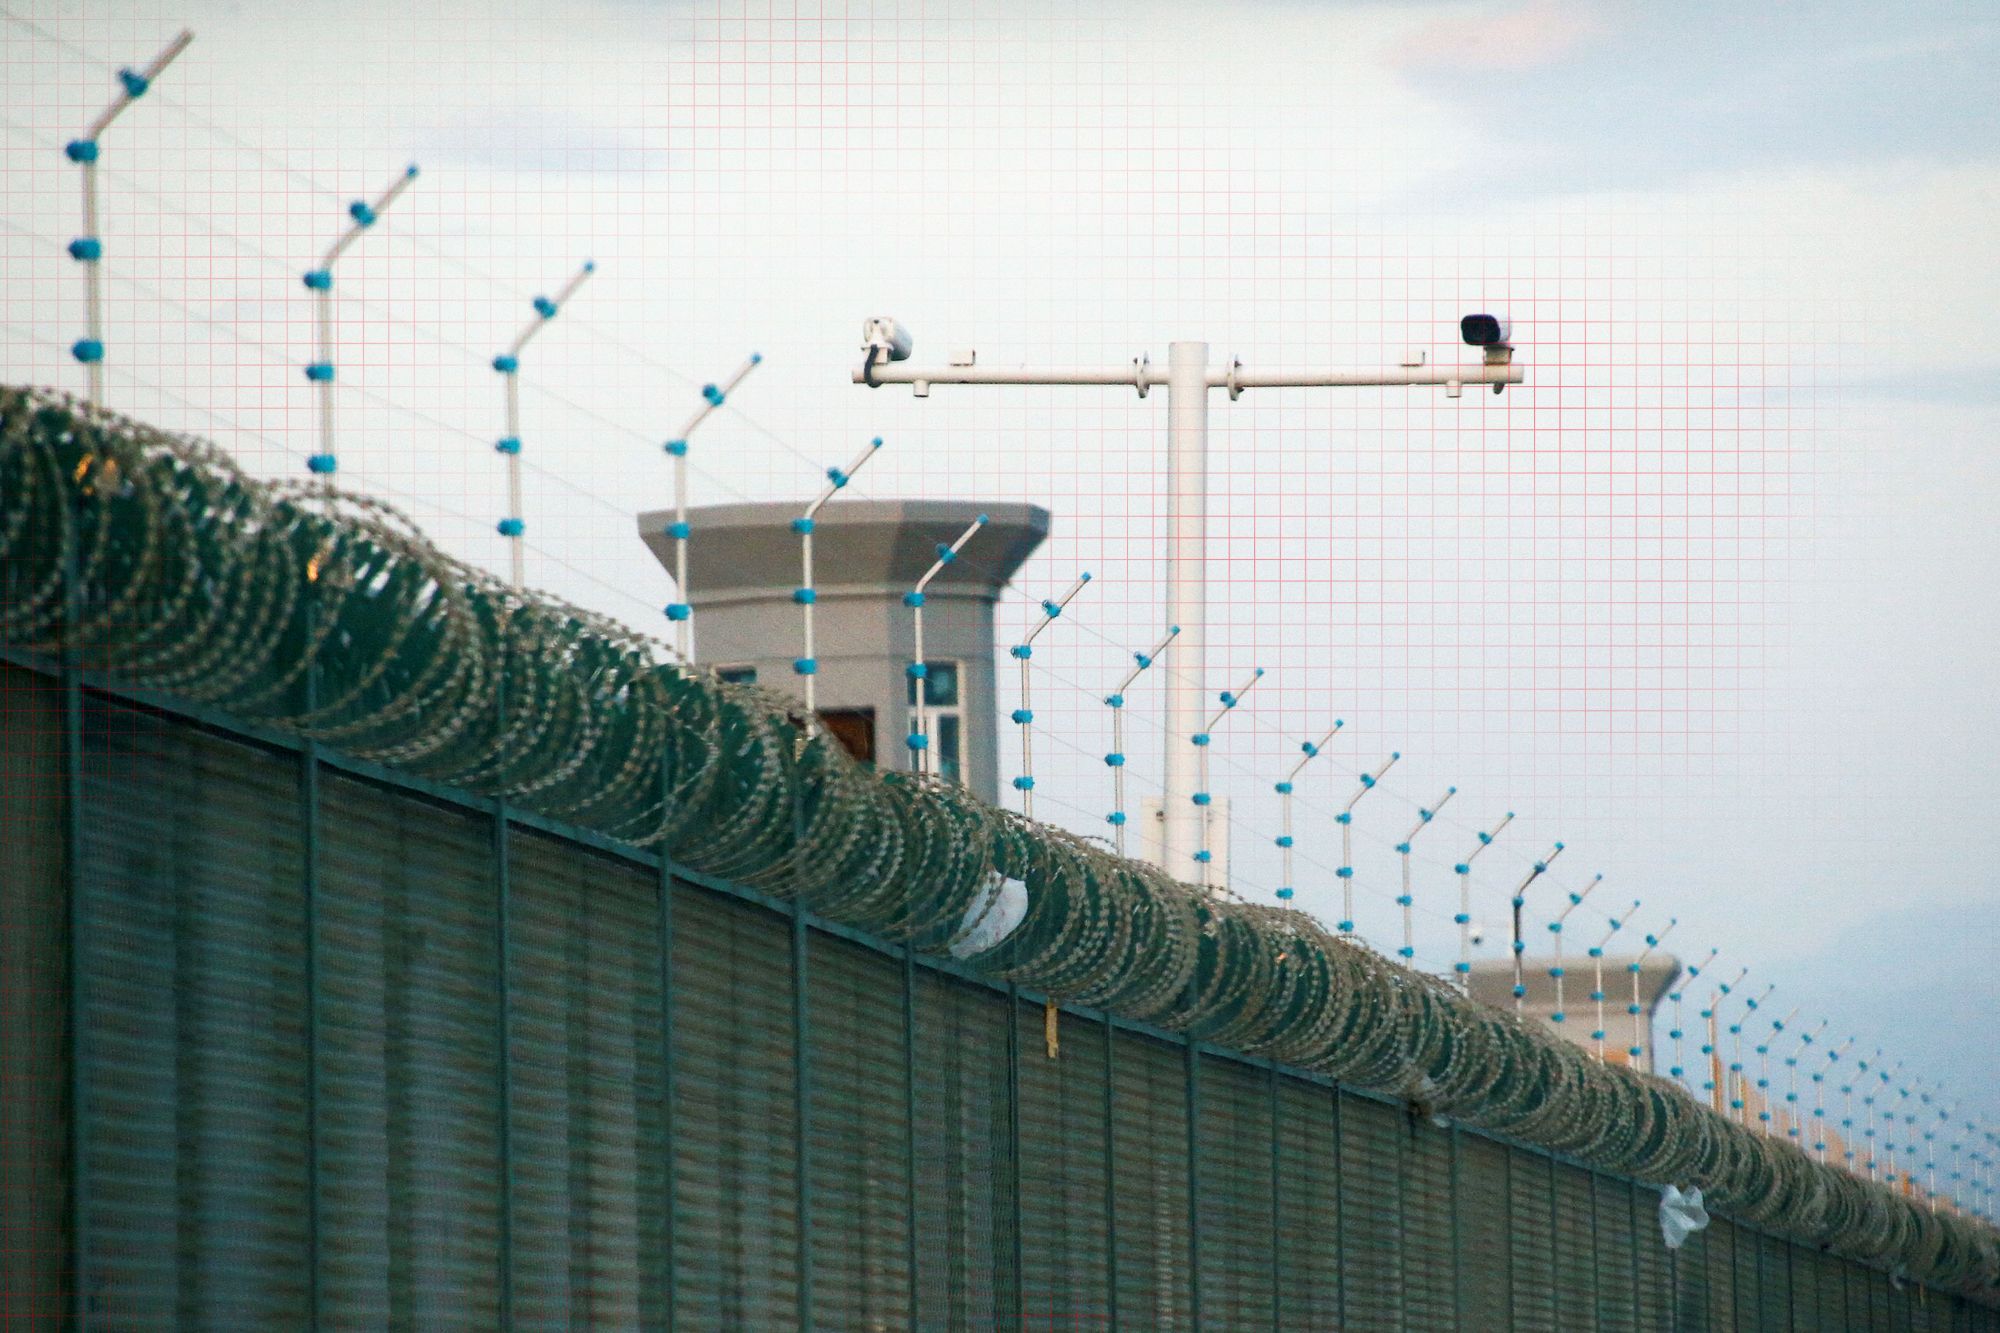 Security cameras are installed above the perimeter fence of what is officially known as a vocational skills education centre in Dabancheng, in Xinjiang Uighur Autonomous Region, China September 4, 2018. This centre, situated between regional capital Urumqi and tourist spot Turpan, is among the largest known ones.